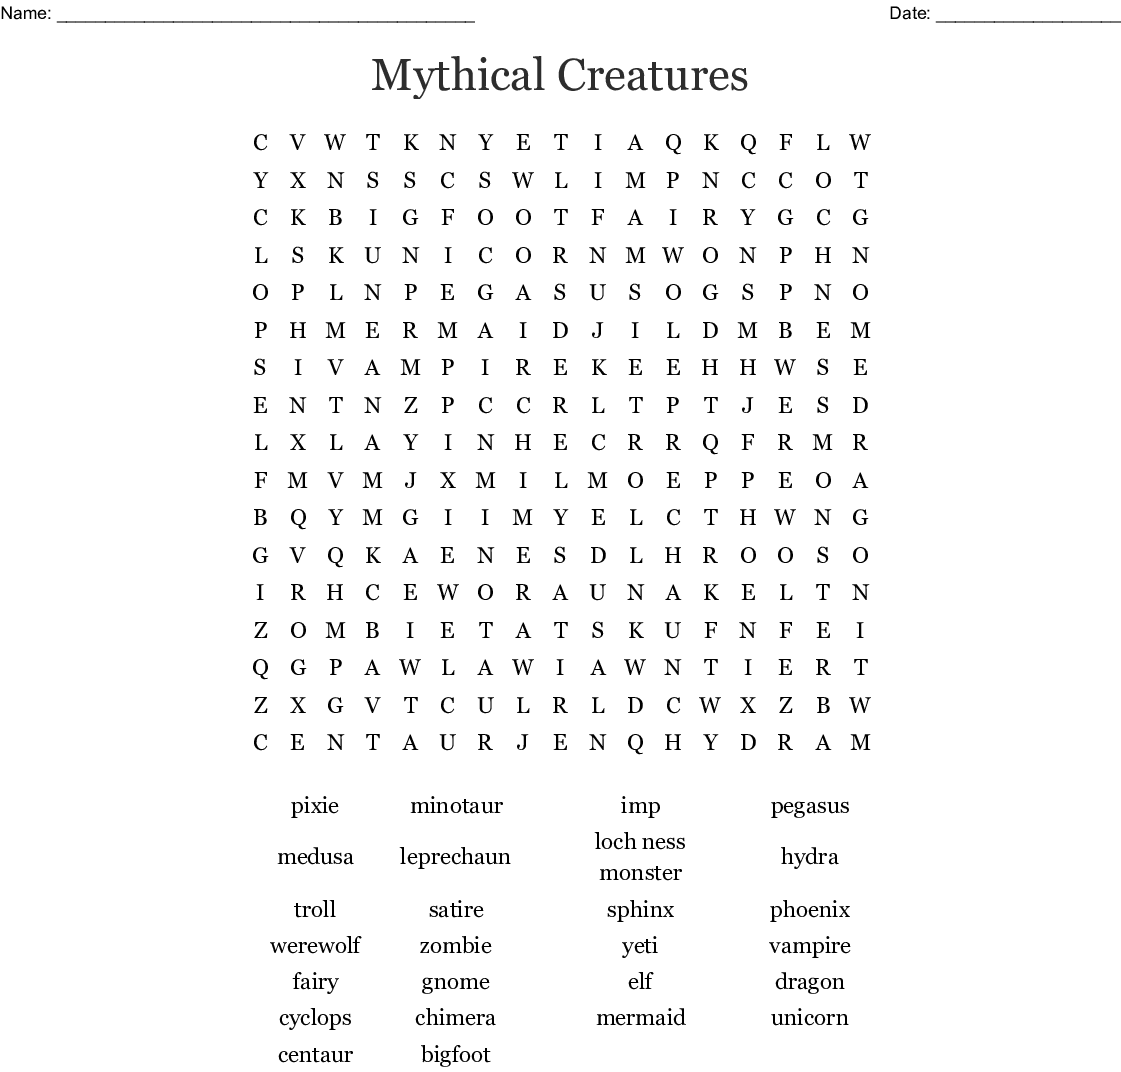 Mythical Creatures Worksheet